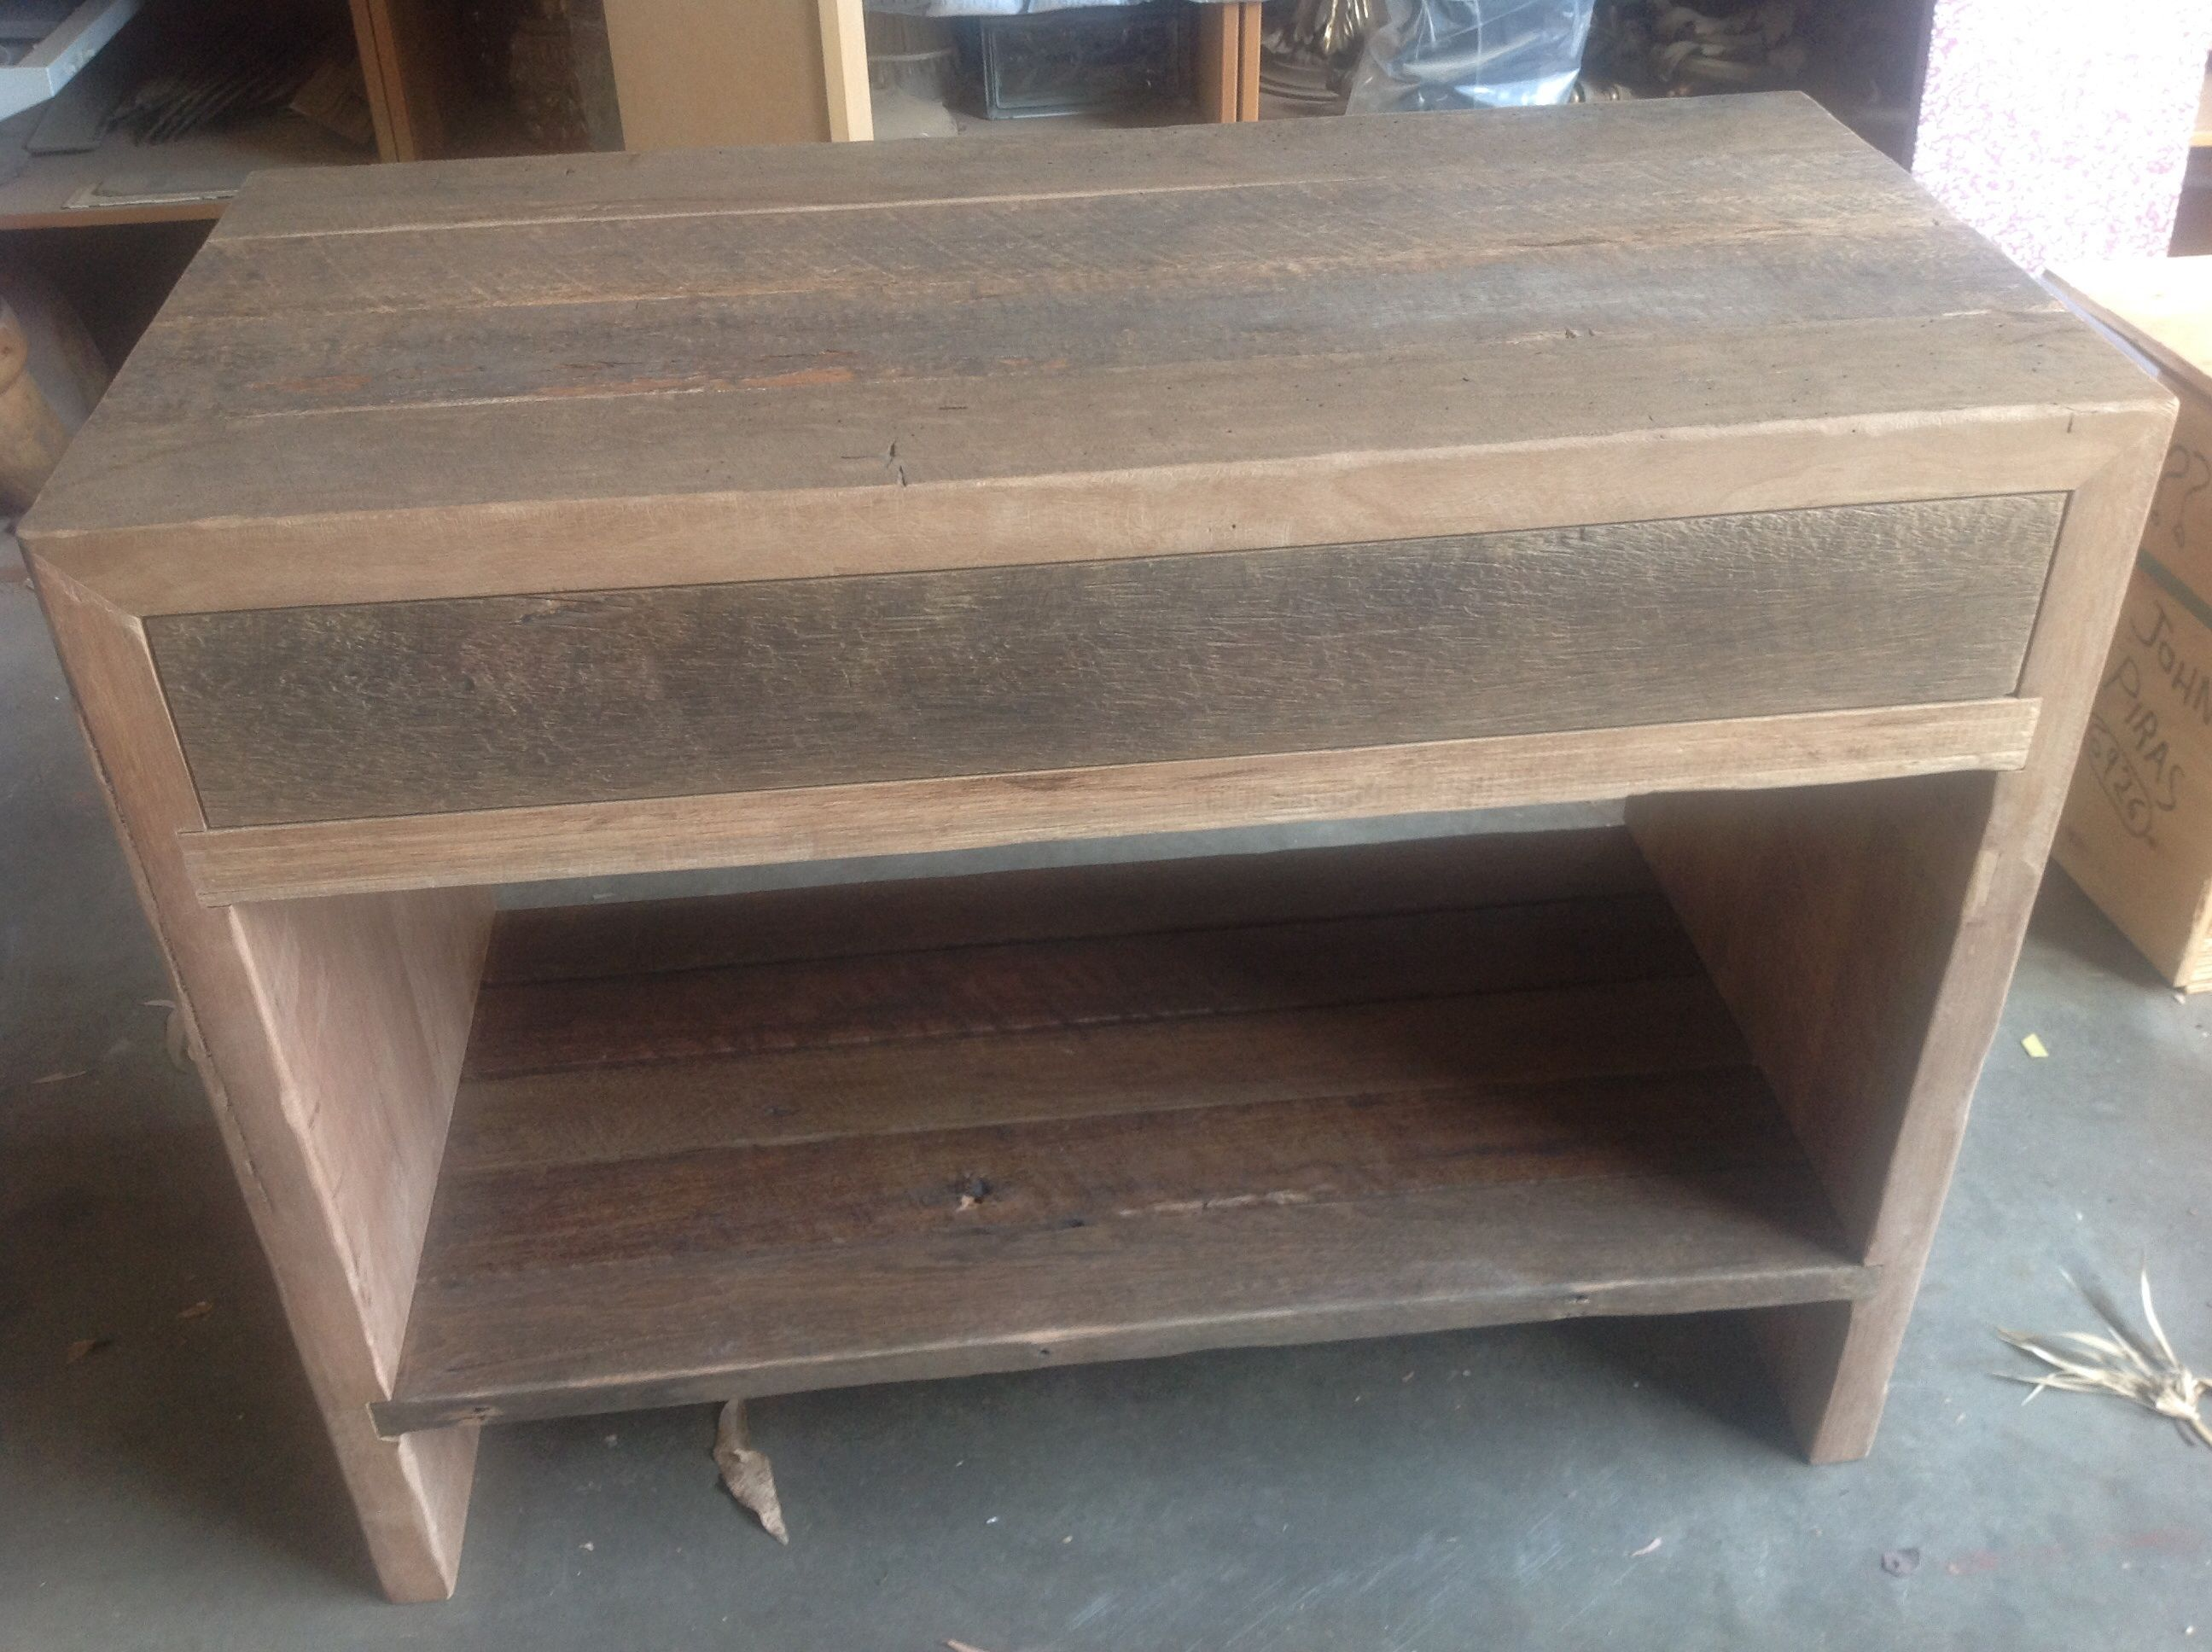 Made to order recycled timber bathroom vanity for customer